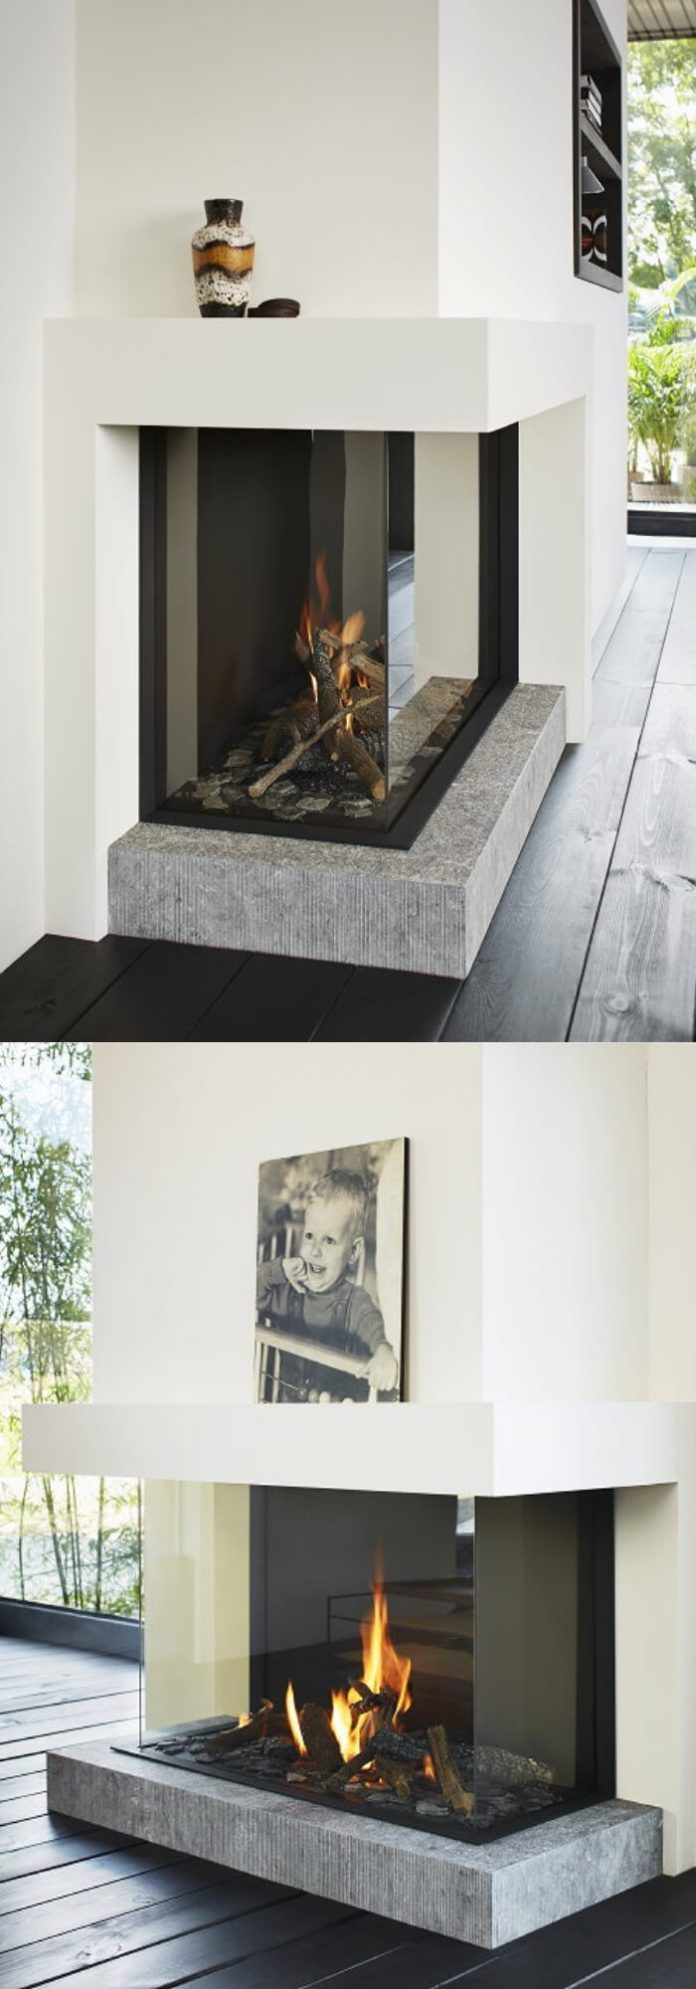 20+ Elegant Corner Fireplace Ideas & Designs for Your Home 2021